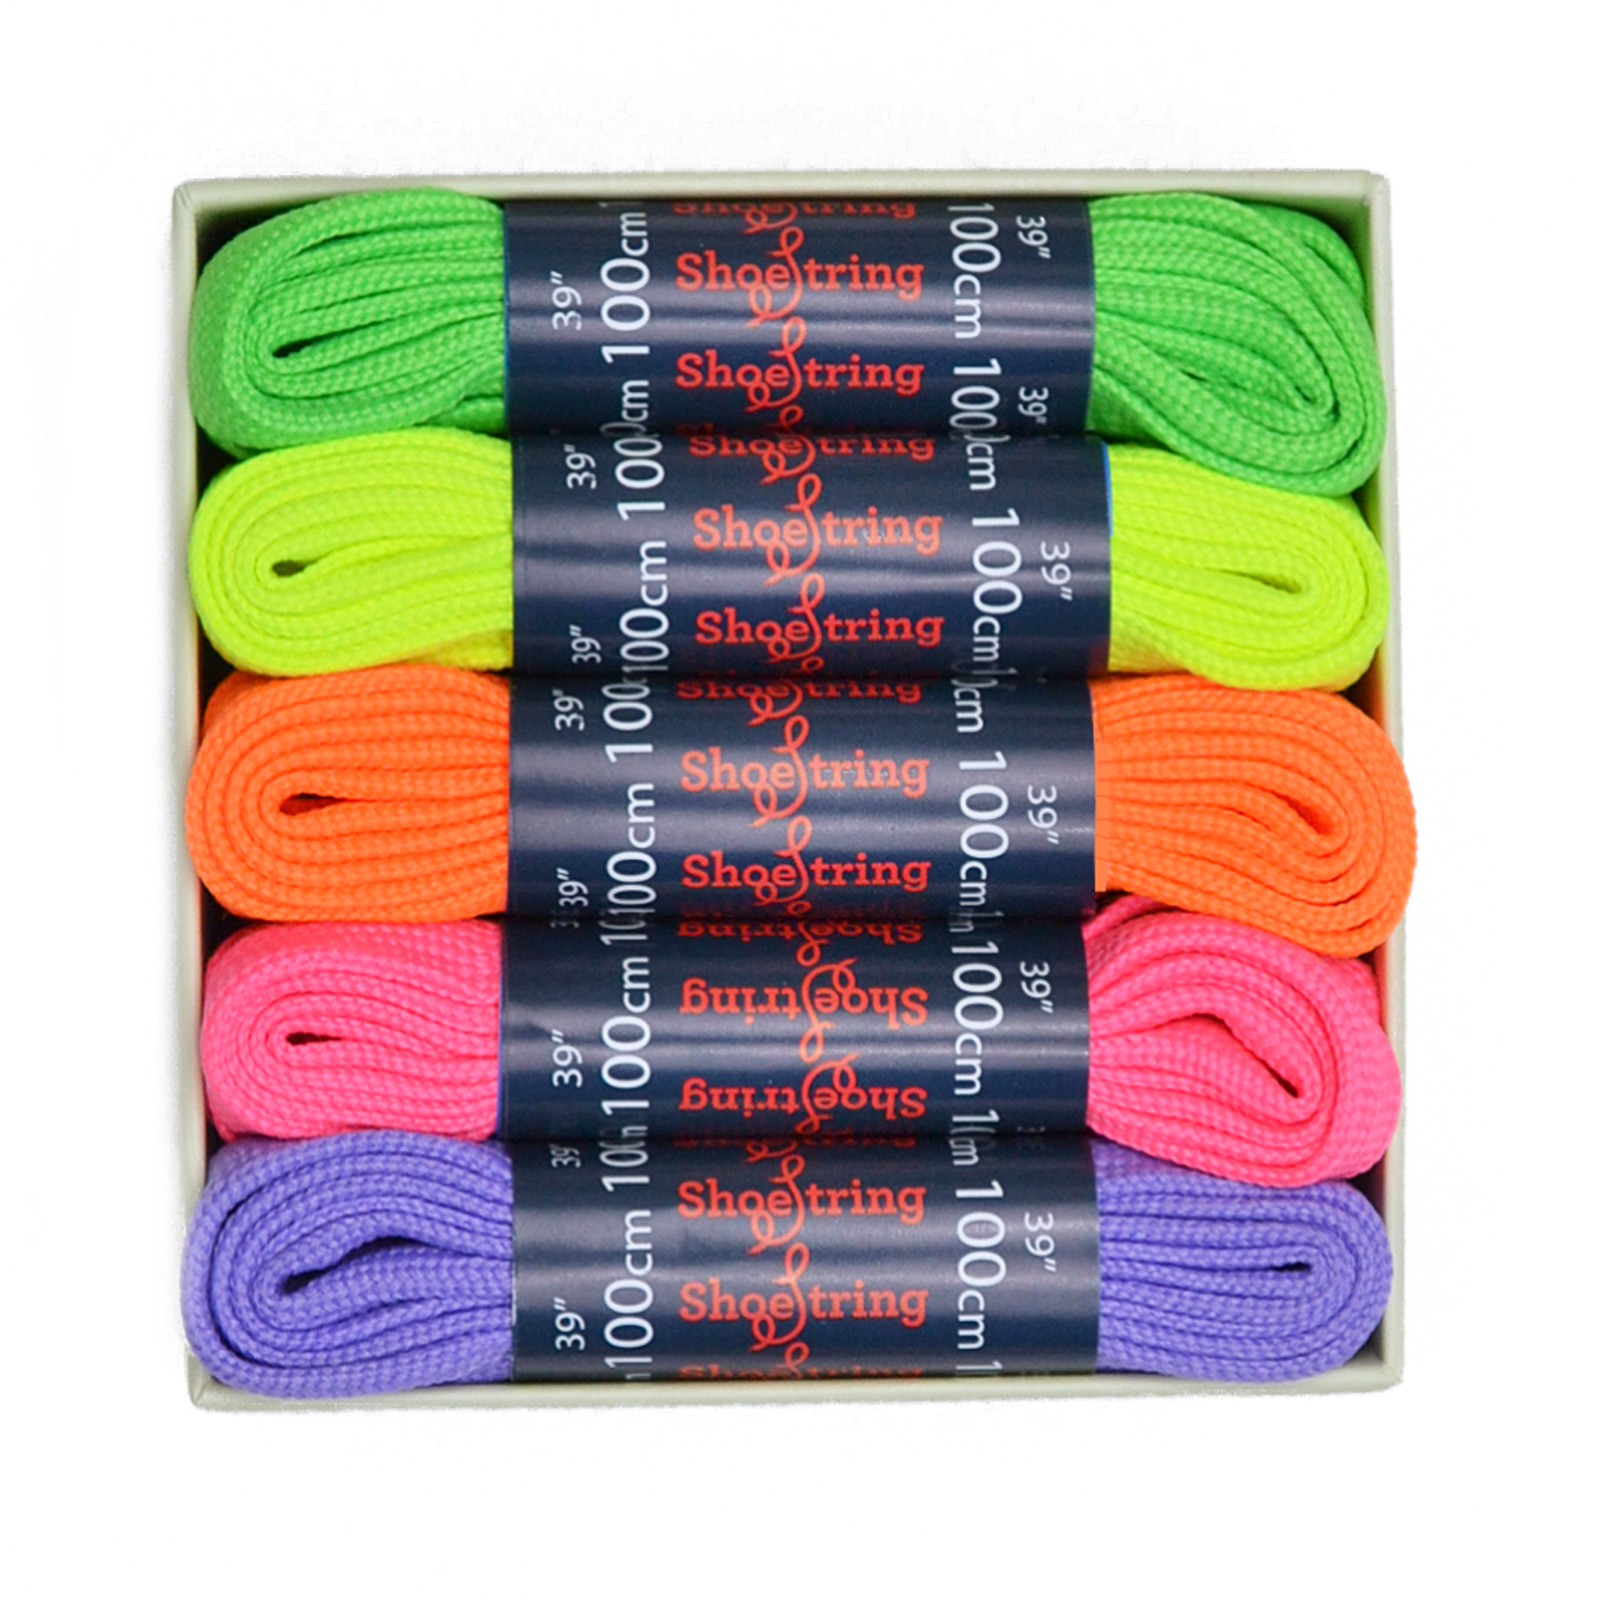 Shoestring Neon Laces Set Flat Fashion Shoe 100cm, Set Of 5 Pairs In Gift Box